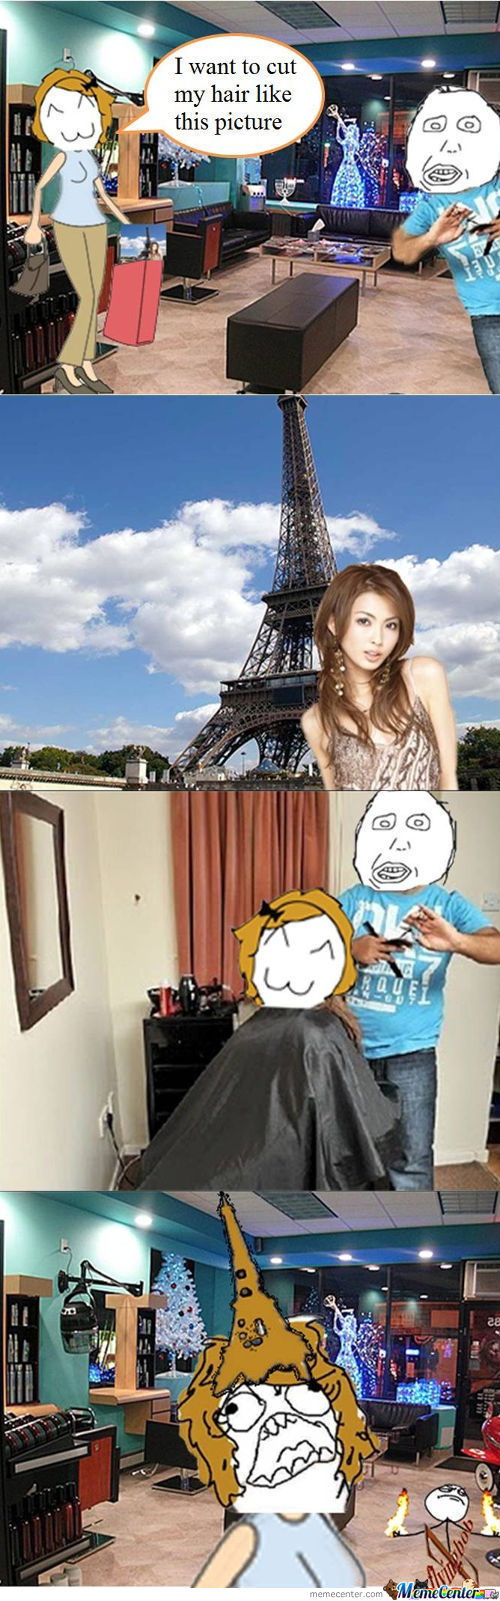 Derpina's Hair Cut - Eiffel Tower